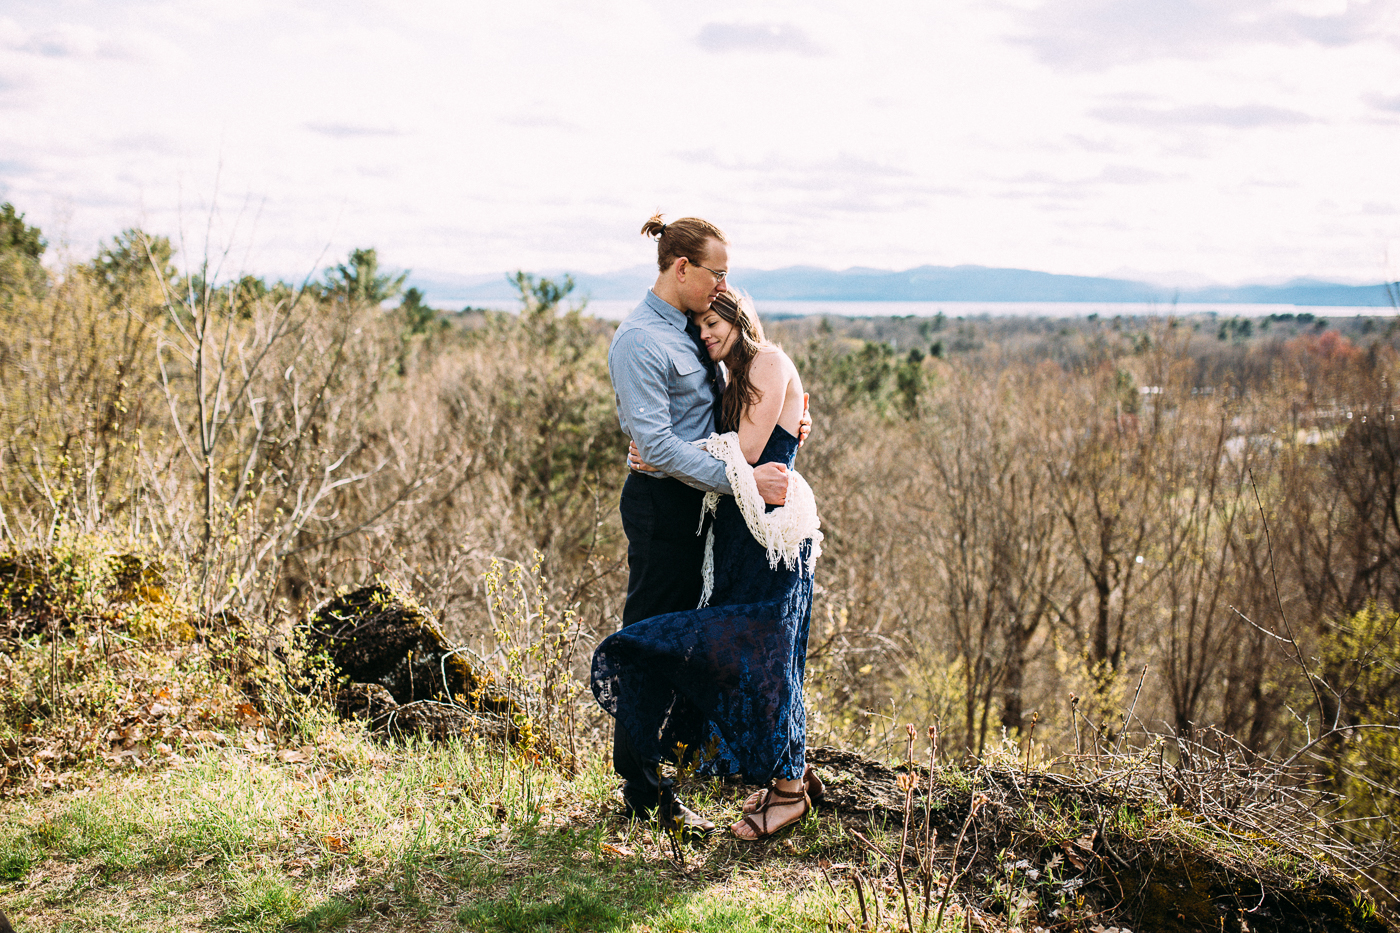 erinwheat photography-jplaurenelopement6994